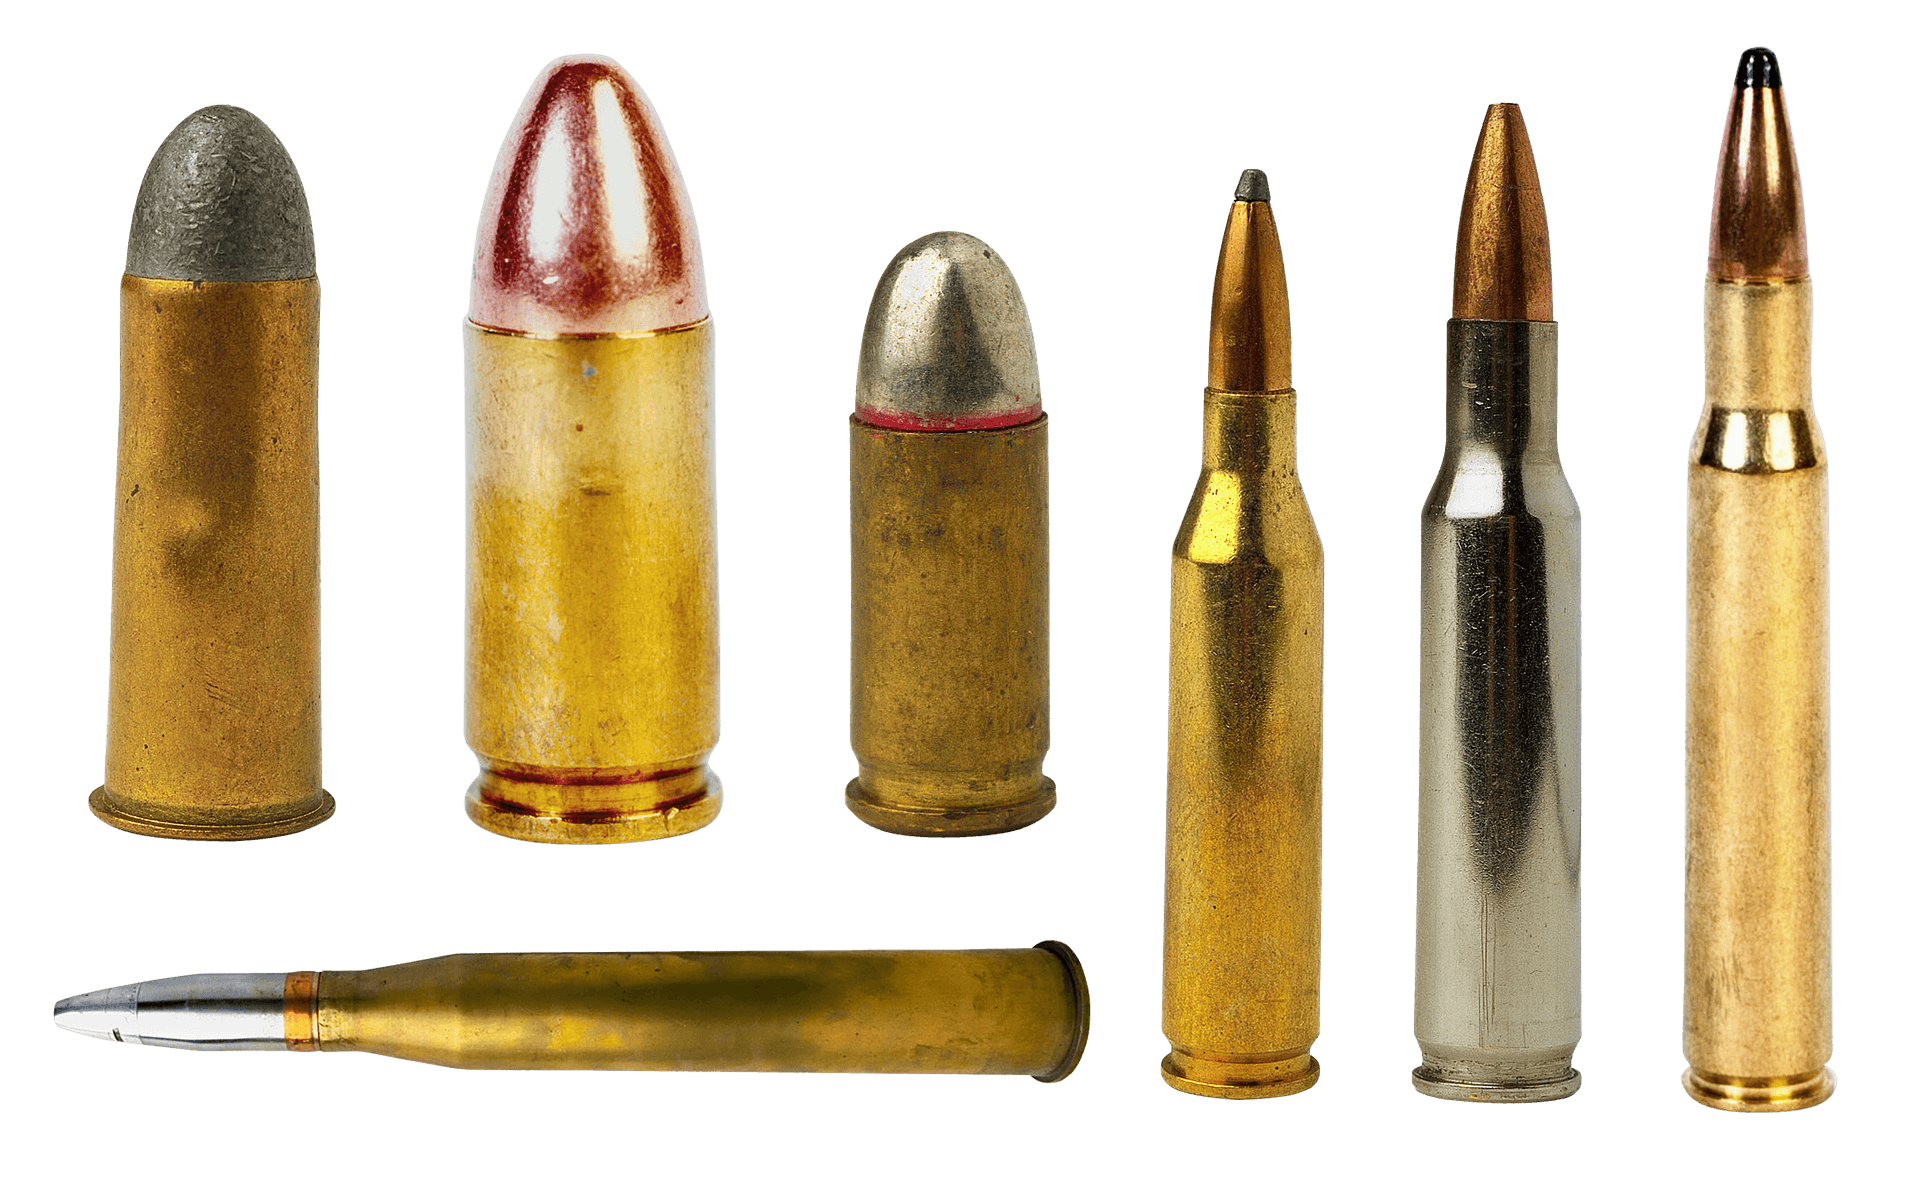 How To Recycle Spent Ammo